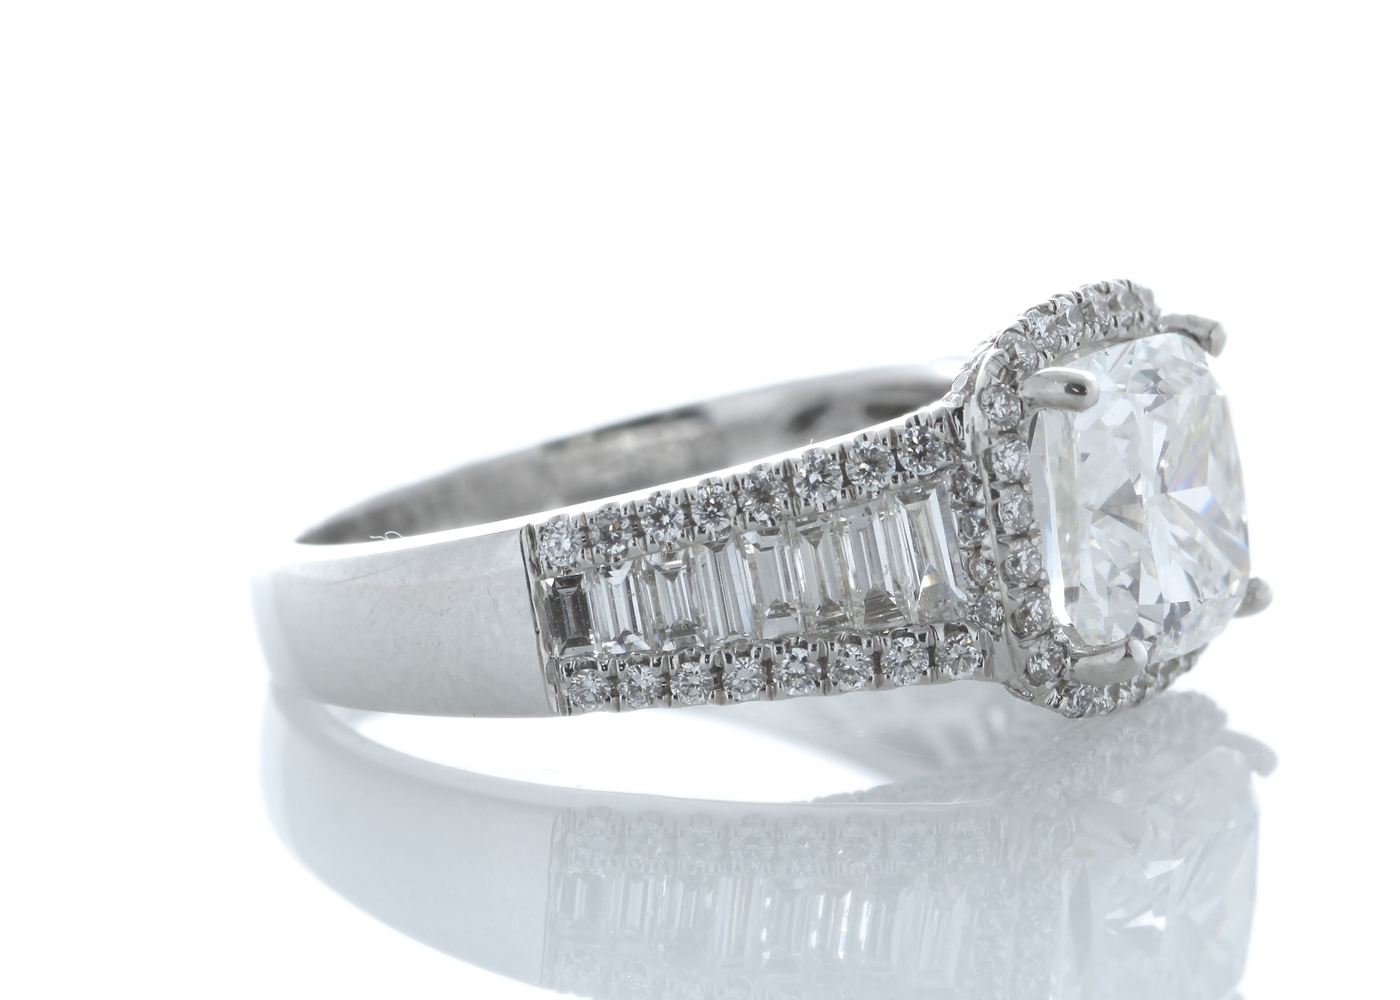 18ct White Gold Halo Set Ring 3.14 Carats - Image 4 of 5